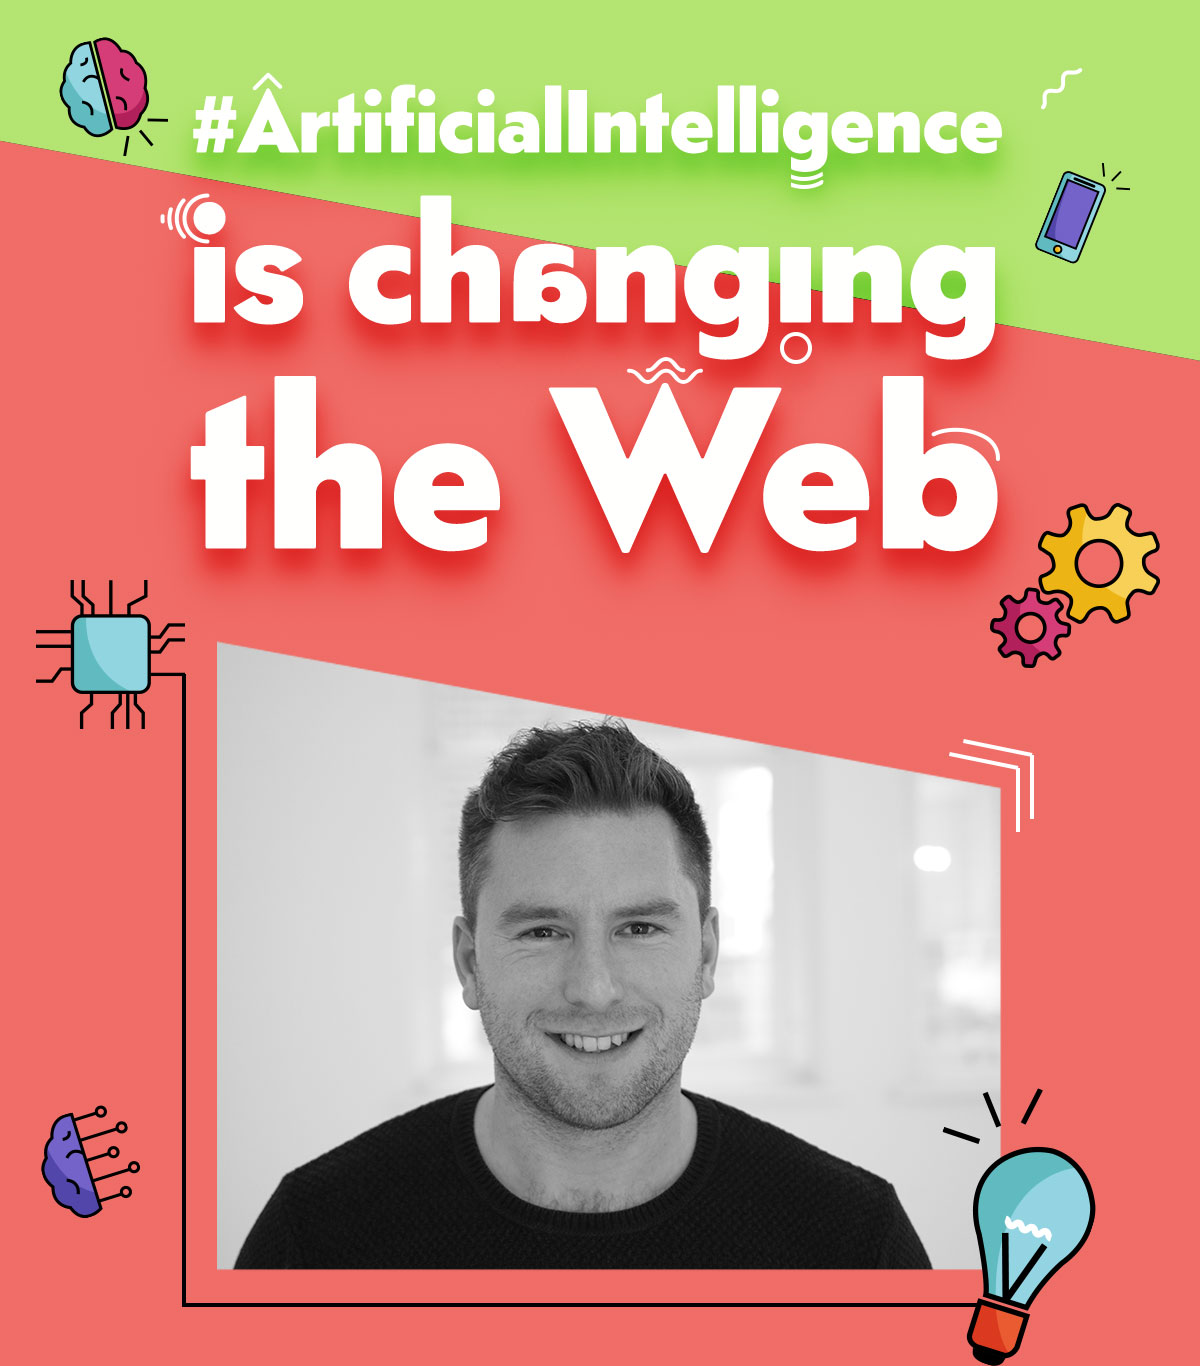 Artificial Intelligence is changing the web